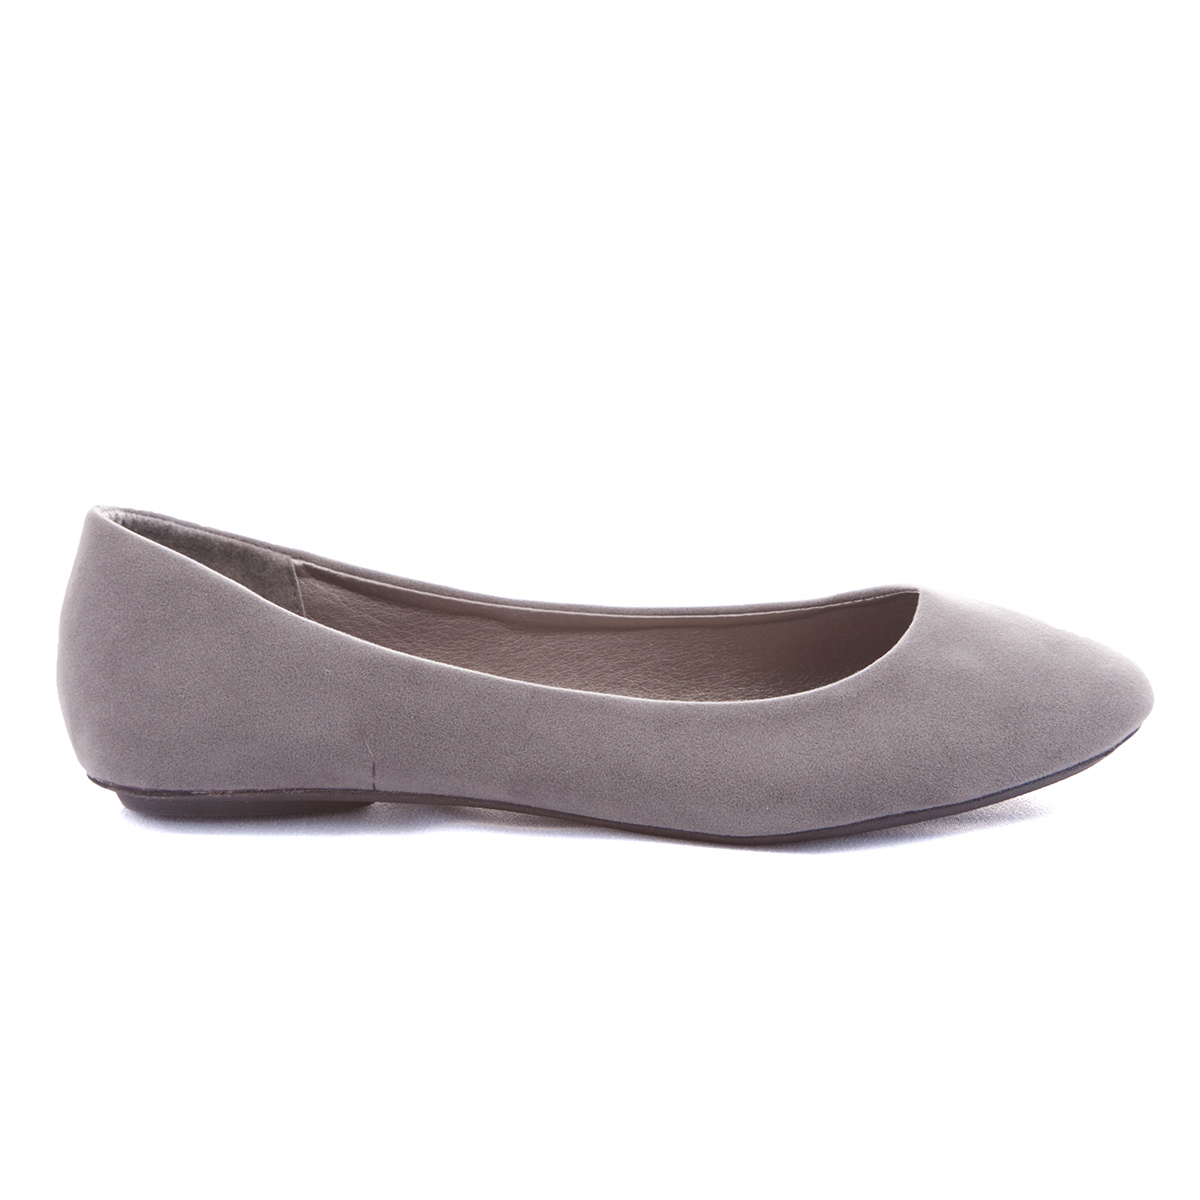 Grey Ballet Flats Sale: Save Up to 50% Off! Shop tanzaniasafarisorvicos.ga's huge selection of Grey Ballet Flats - Over 70 styles available. FREE Shipping & Exchanges, and a % price guarantee!